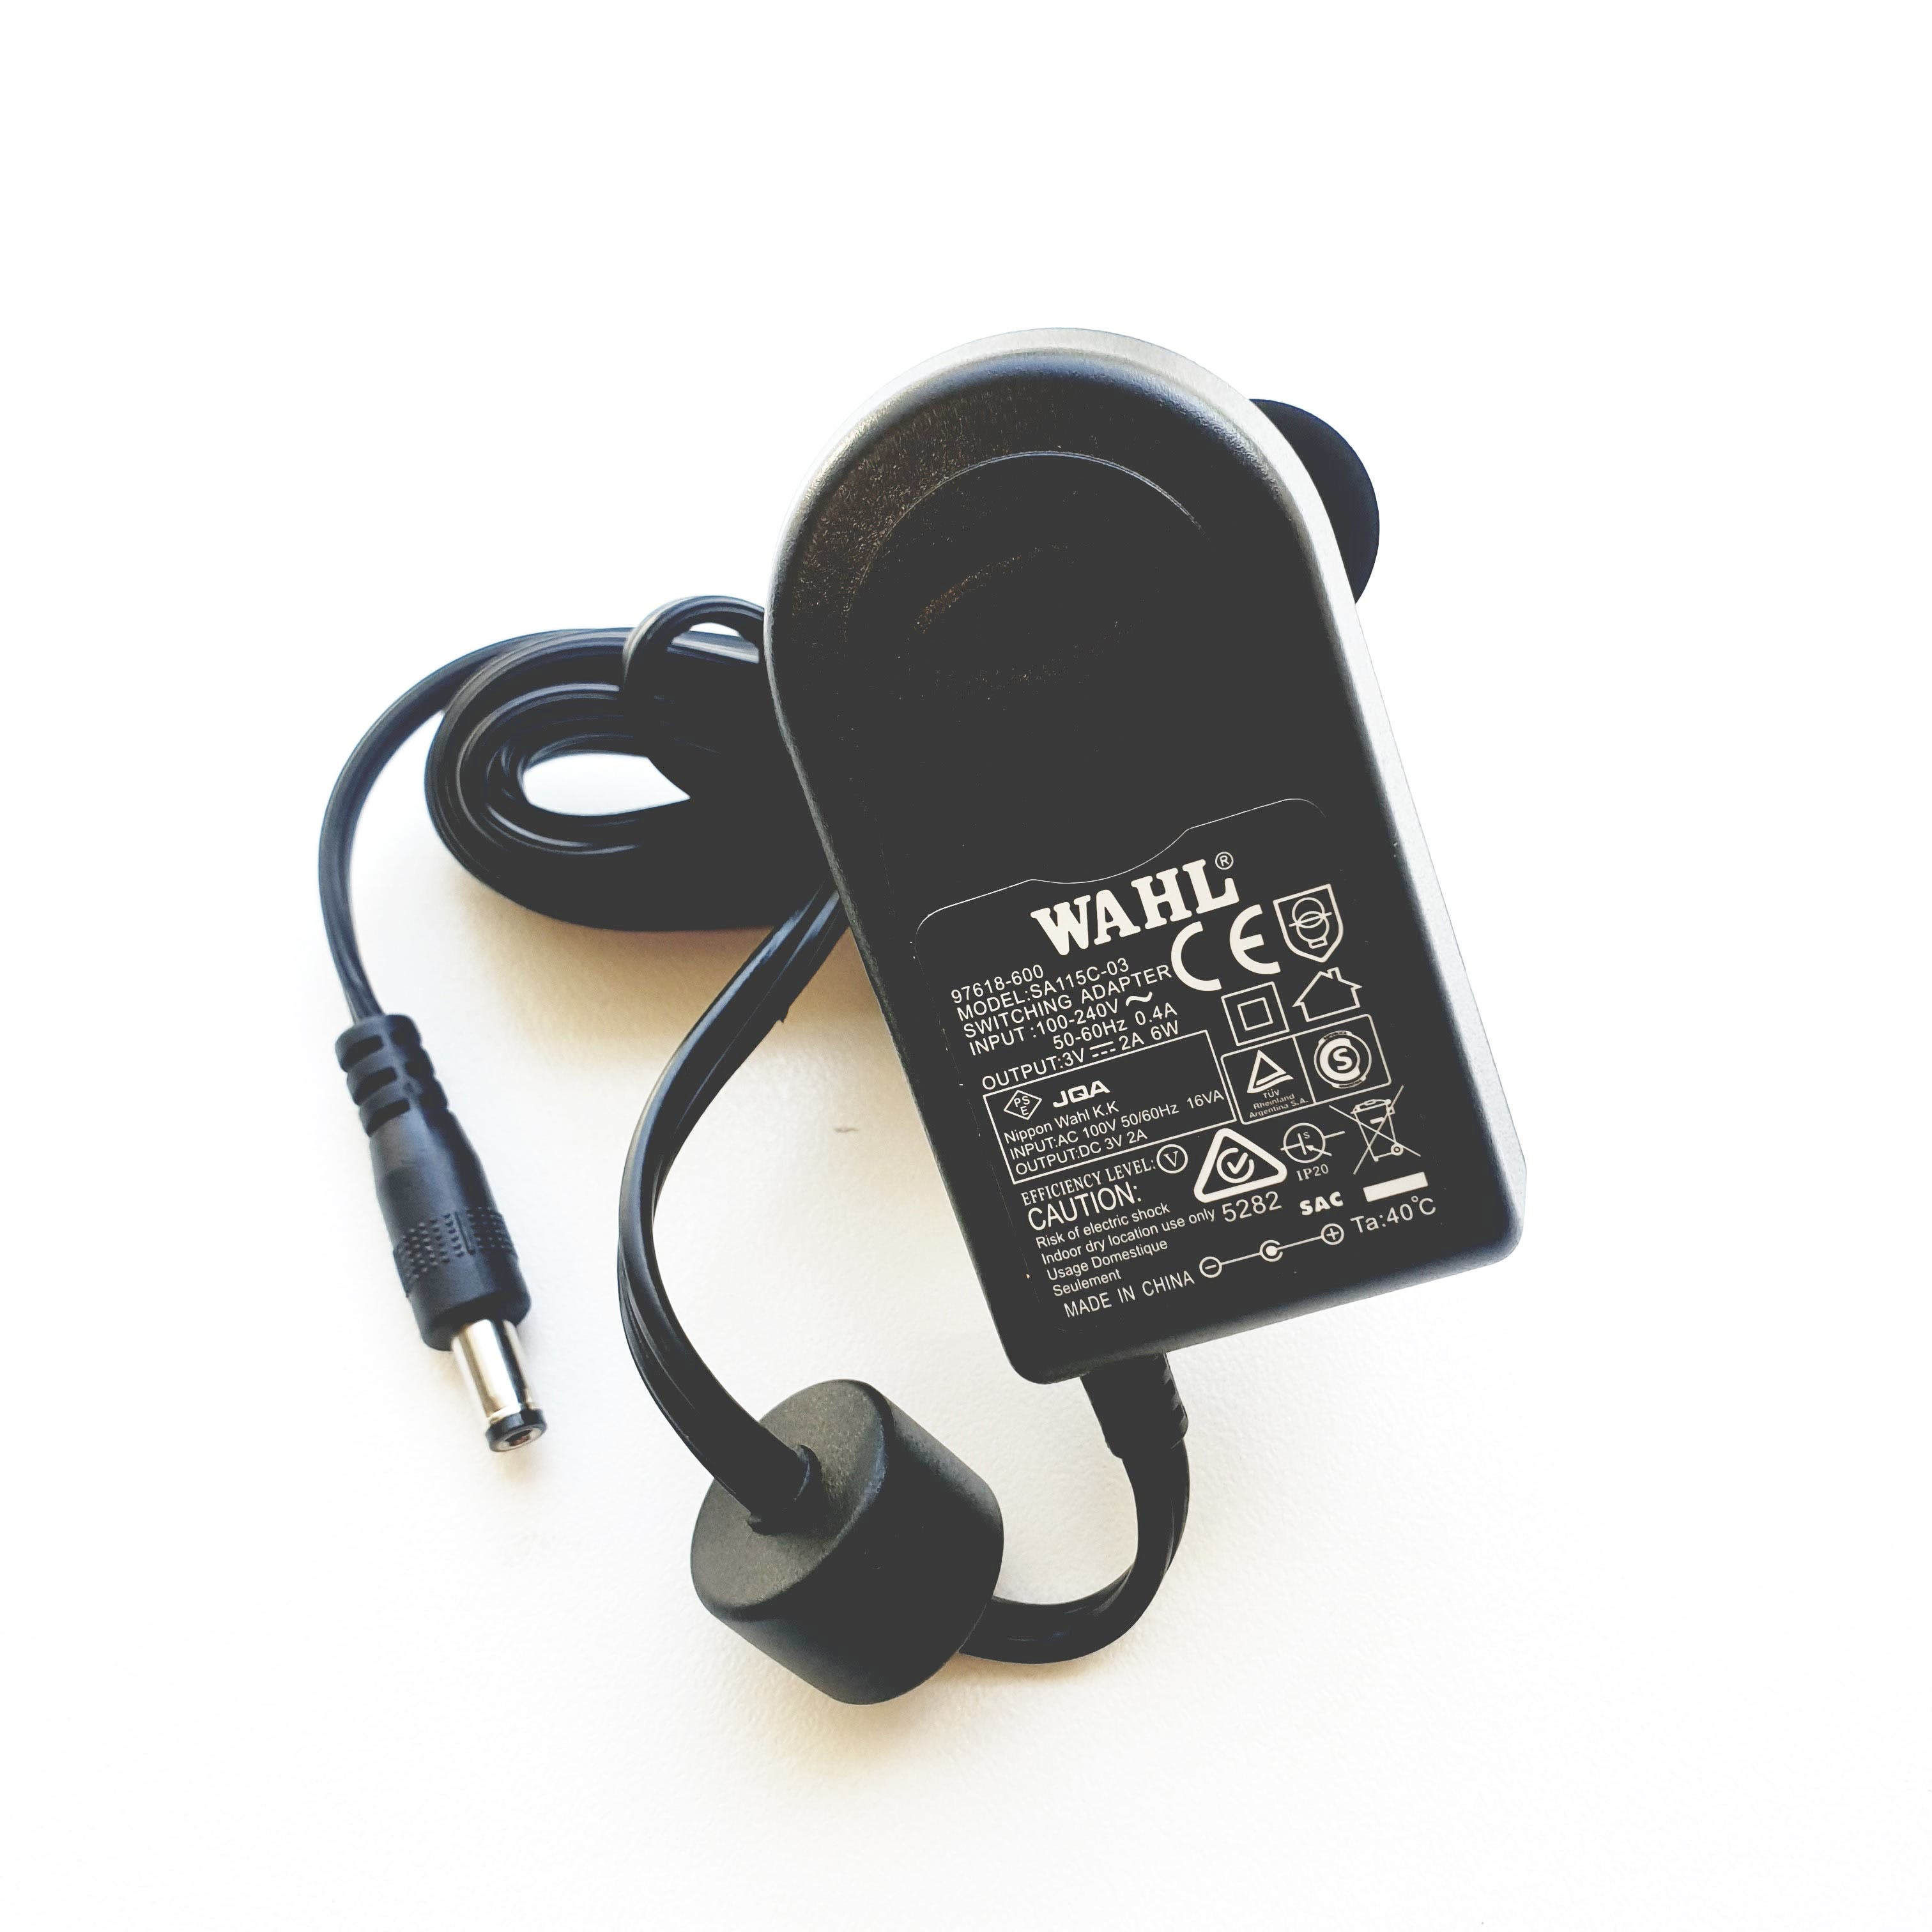 WAHL Replacement CHARGER (Model SA115C-03) 97618-600 Male for clipplers & trimmers